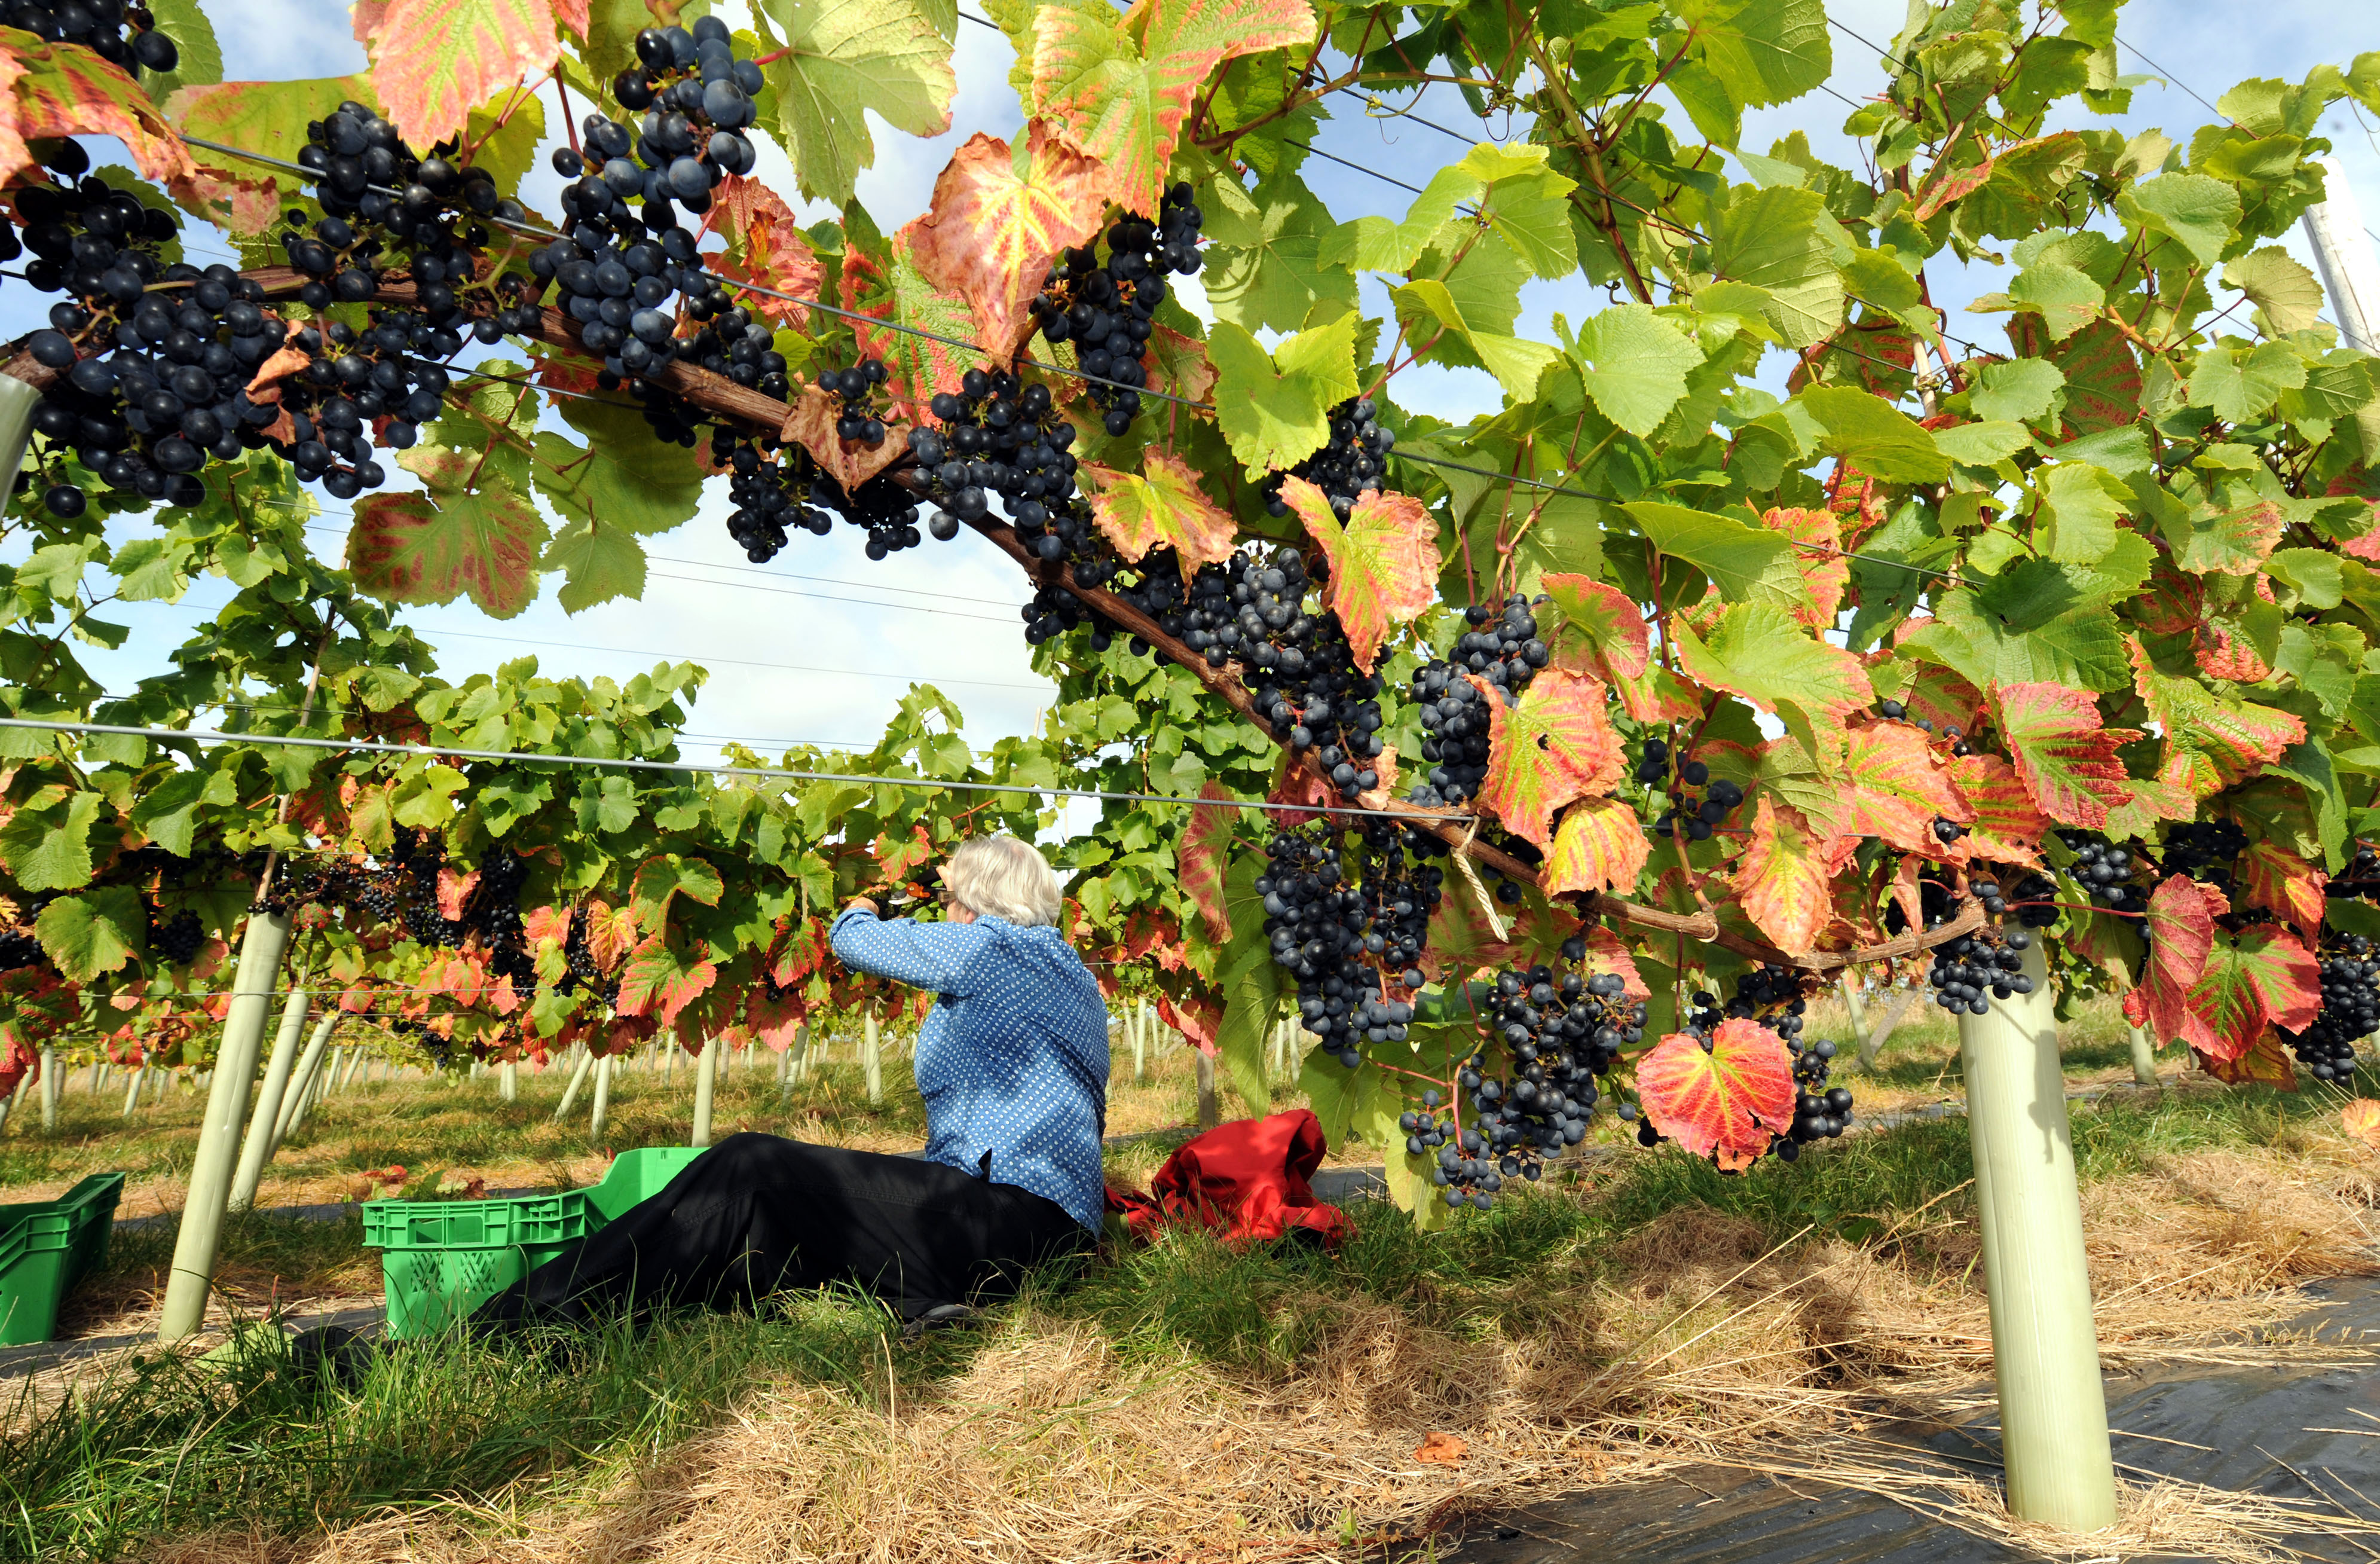 Pickers gather grapes at a vineyard (John Giles/PA)